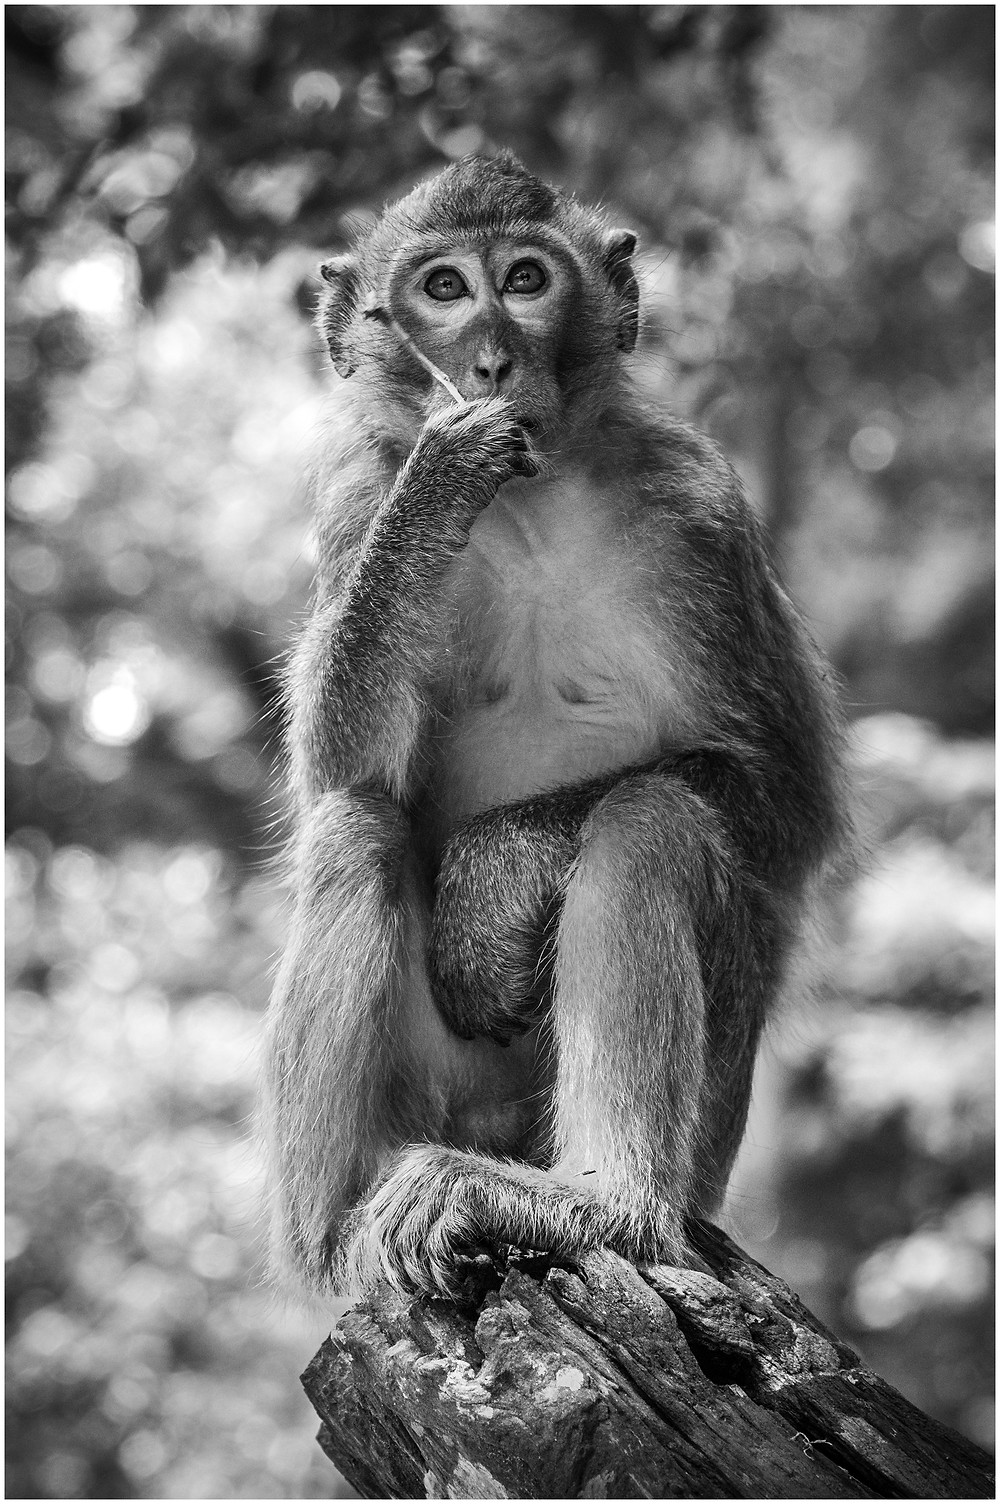 Rhesus macaque monkey sitting in a tree eating leaves in rural Cambodia